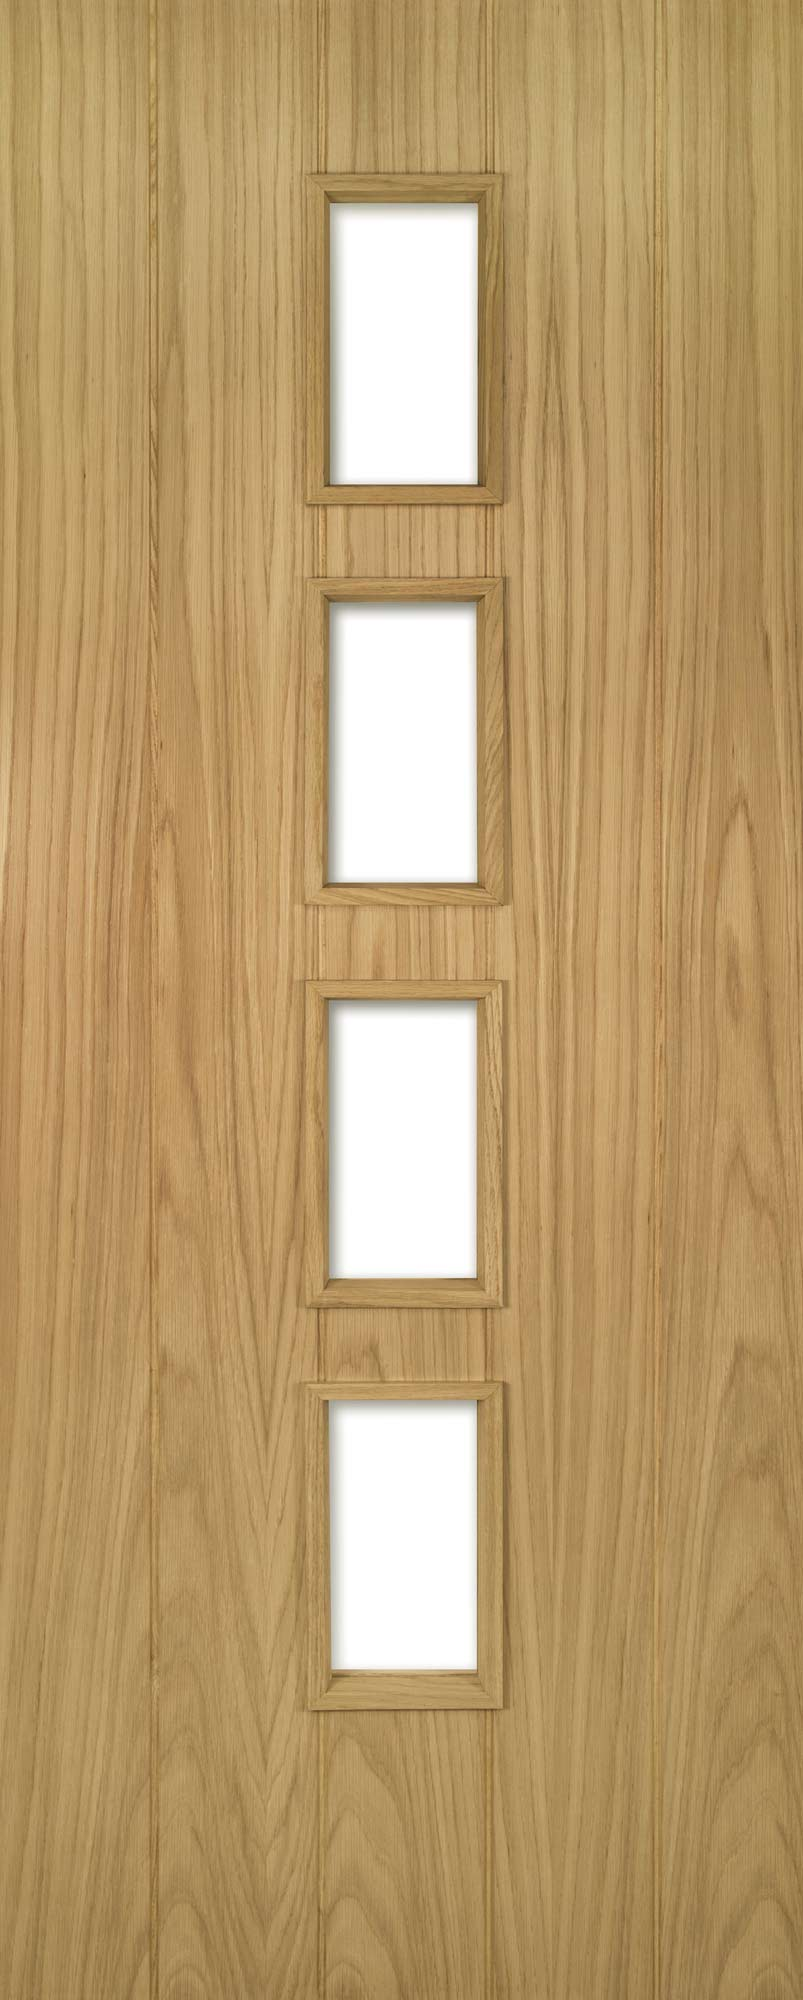 Deanta Unfinished Fd30 Oak Galway Unglazed Door